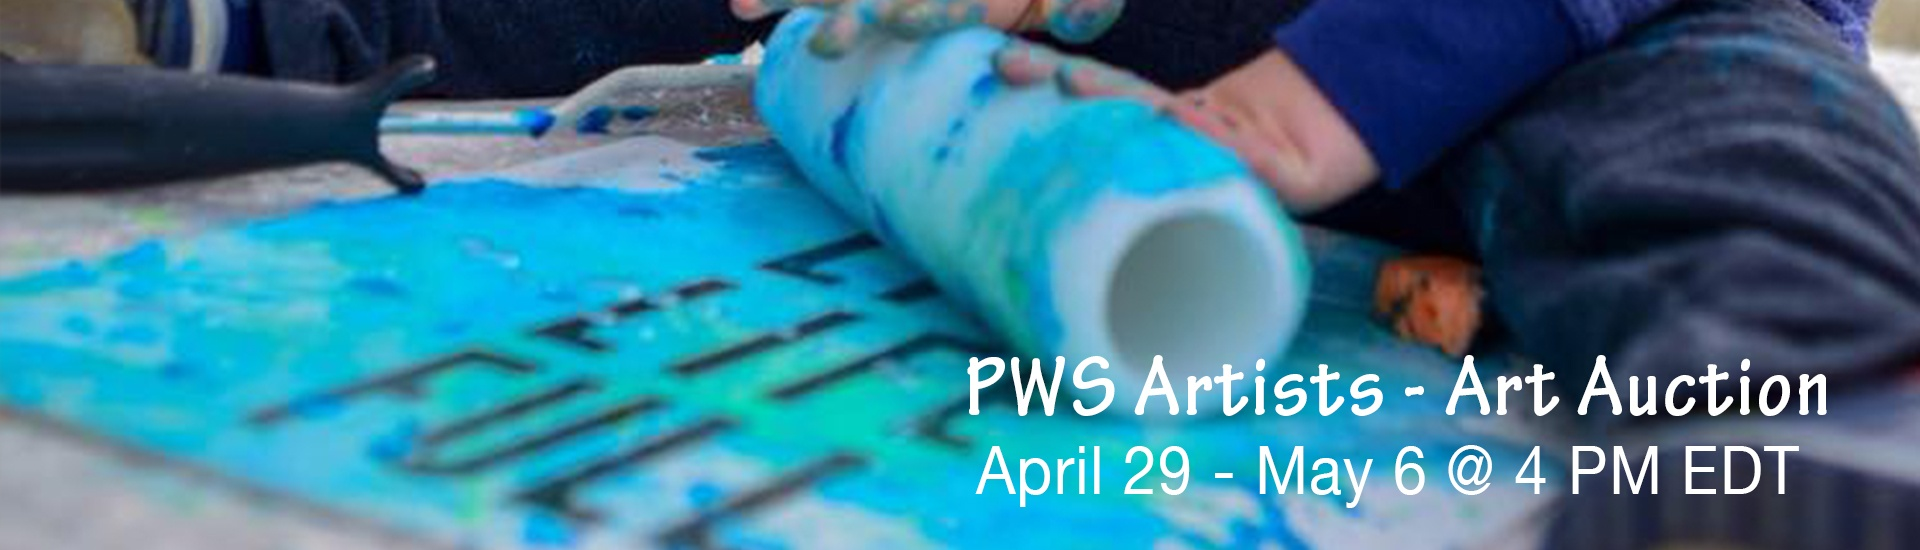 Art Auction Benefiting PWS Research